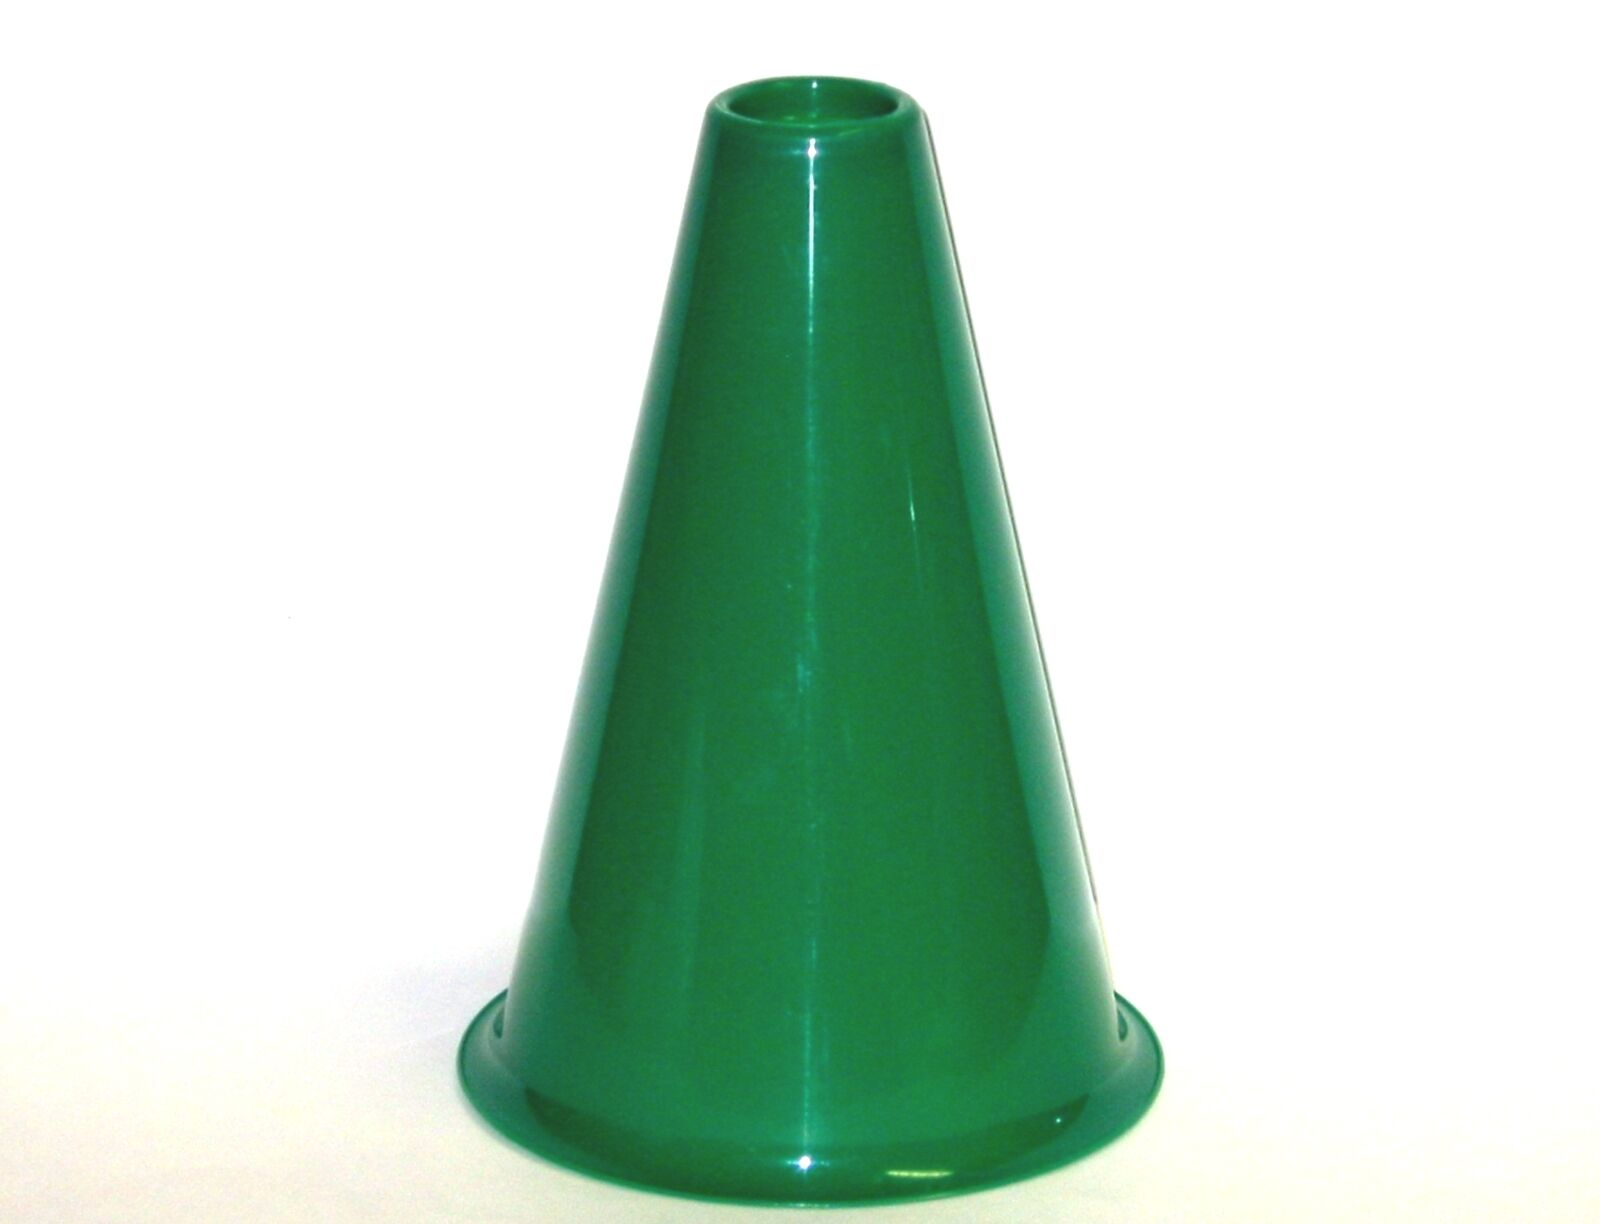 10 Green Megaphones-Cheer Leading, 8 Inches Tall, Mfg. USA, Durable, Lead Free